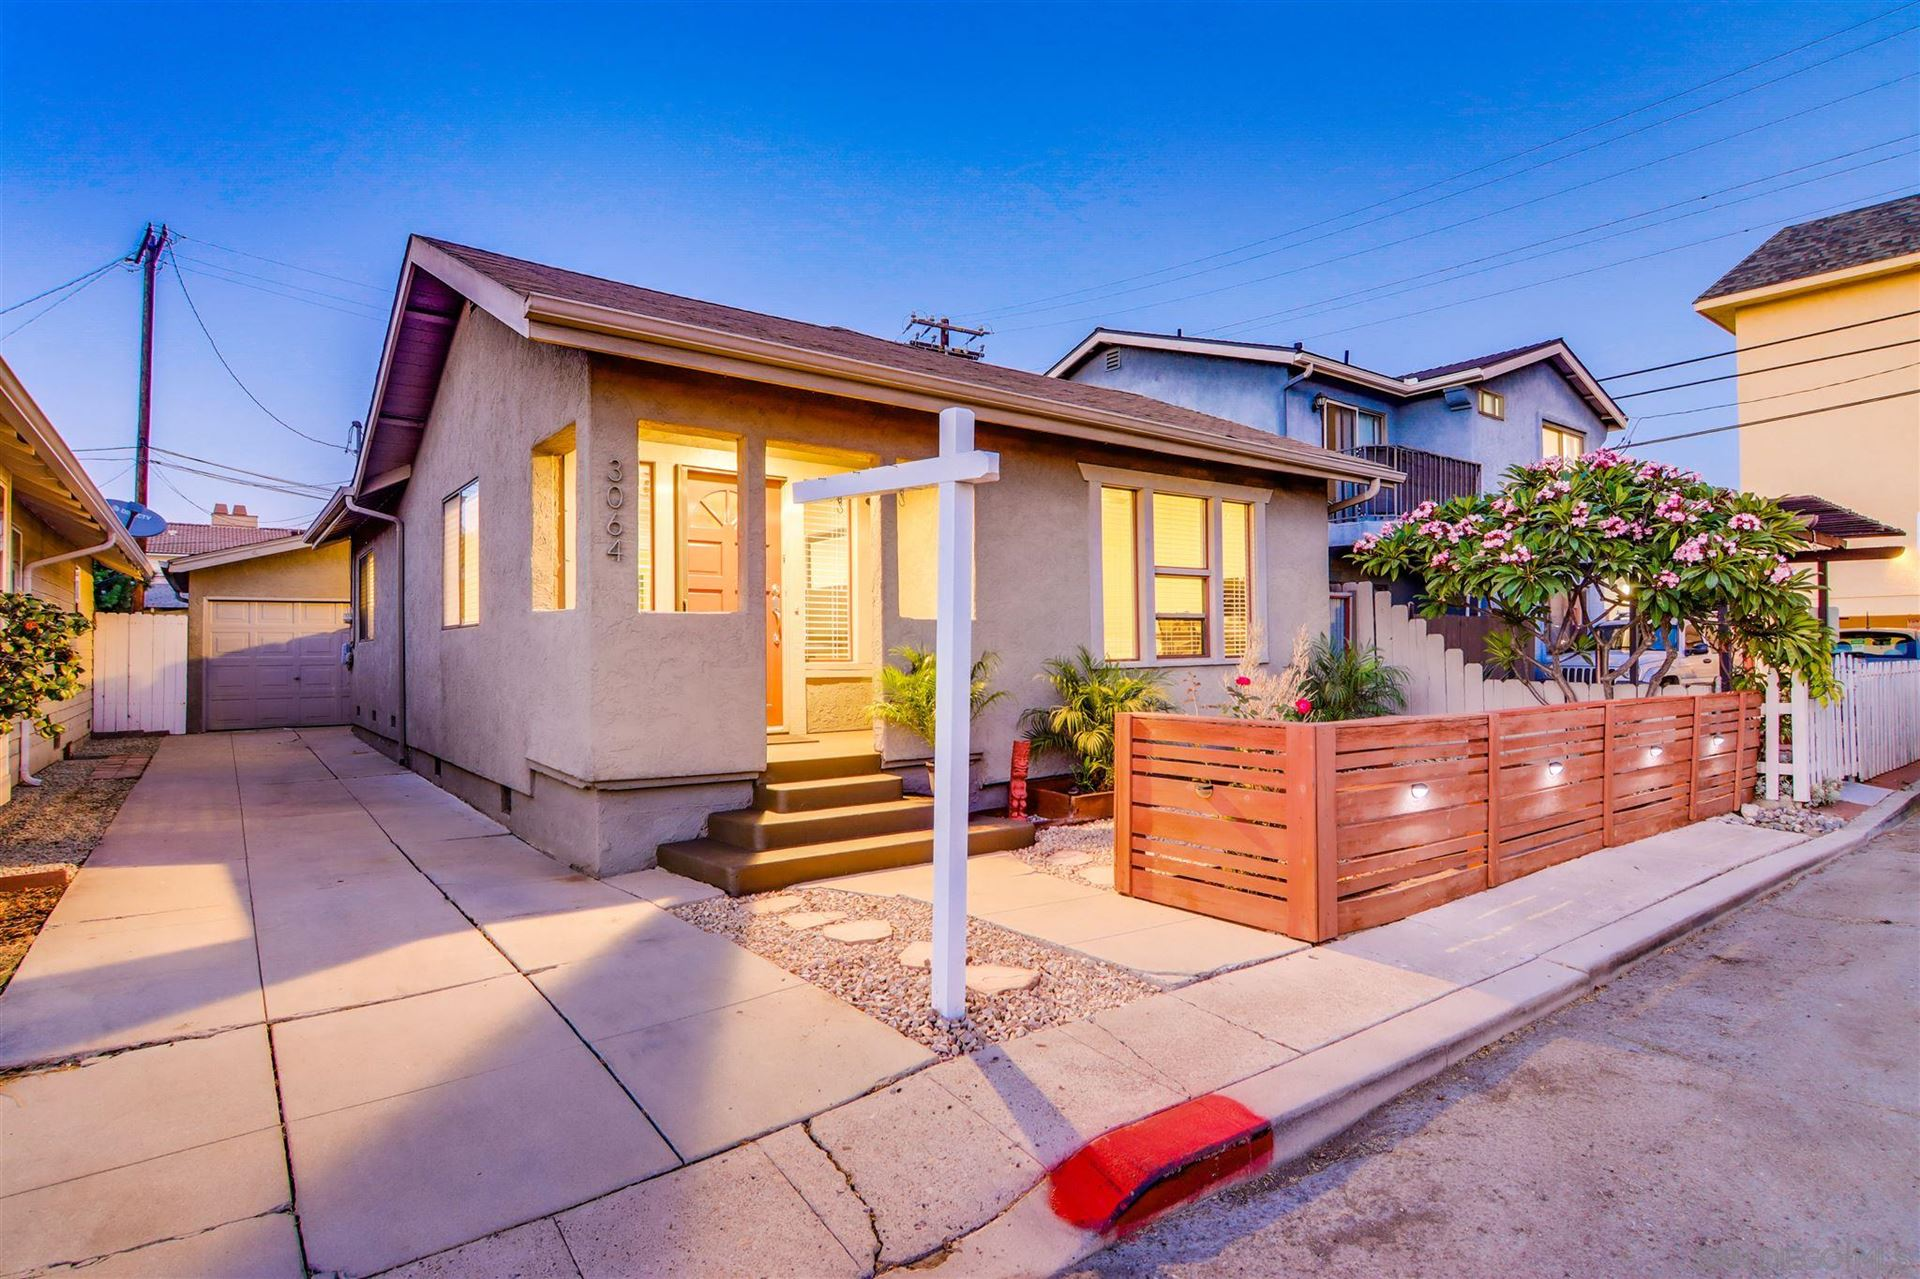 Photo for 3064 Walton Place, University Heights, CA 92116 (MLS # 200049552)